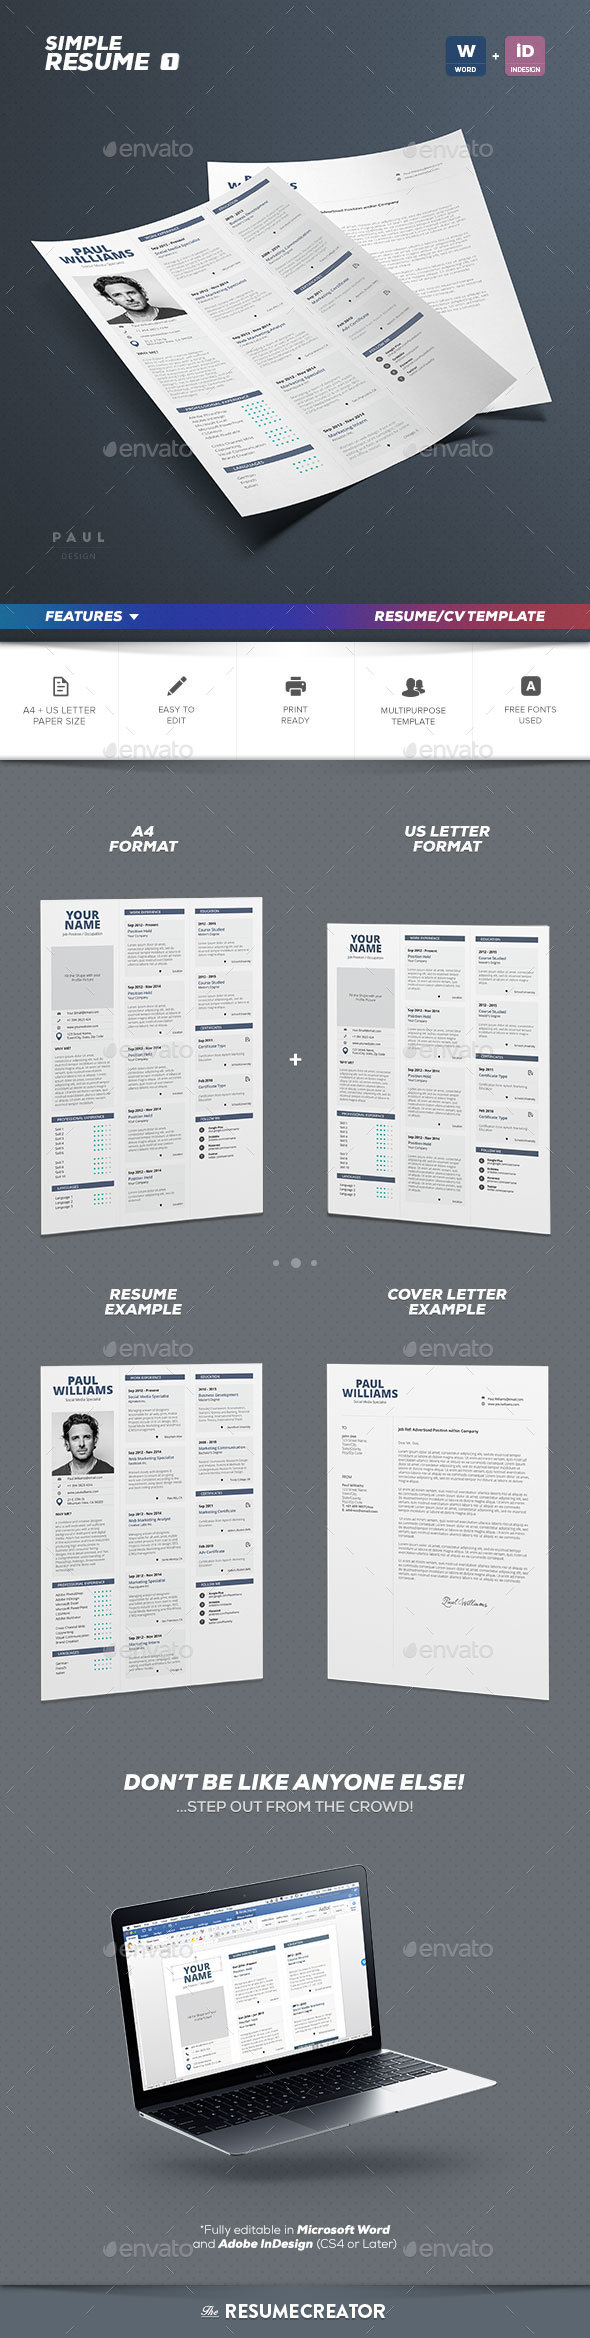 Simple Resume Vol.1